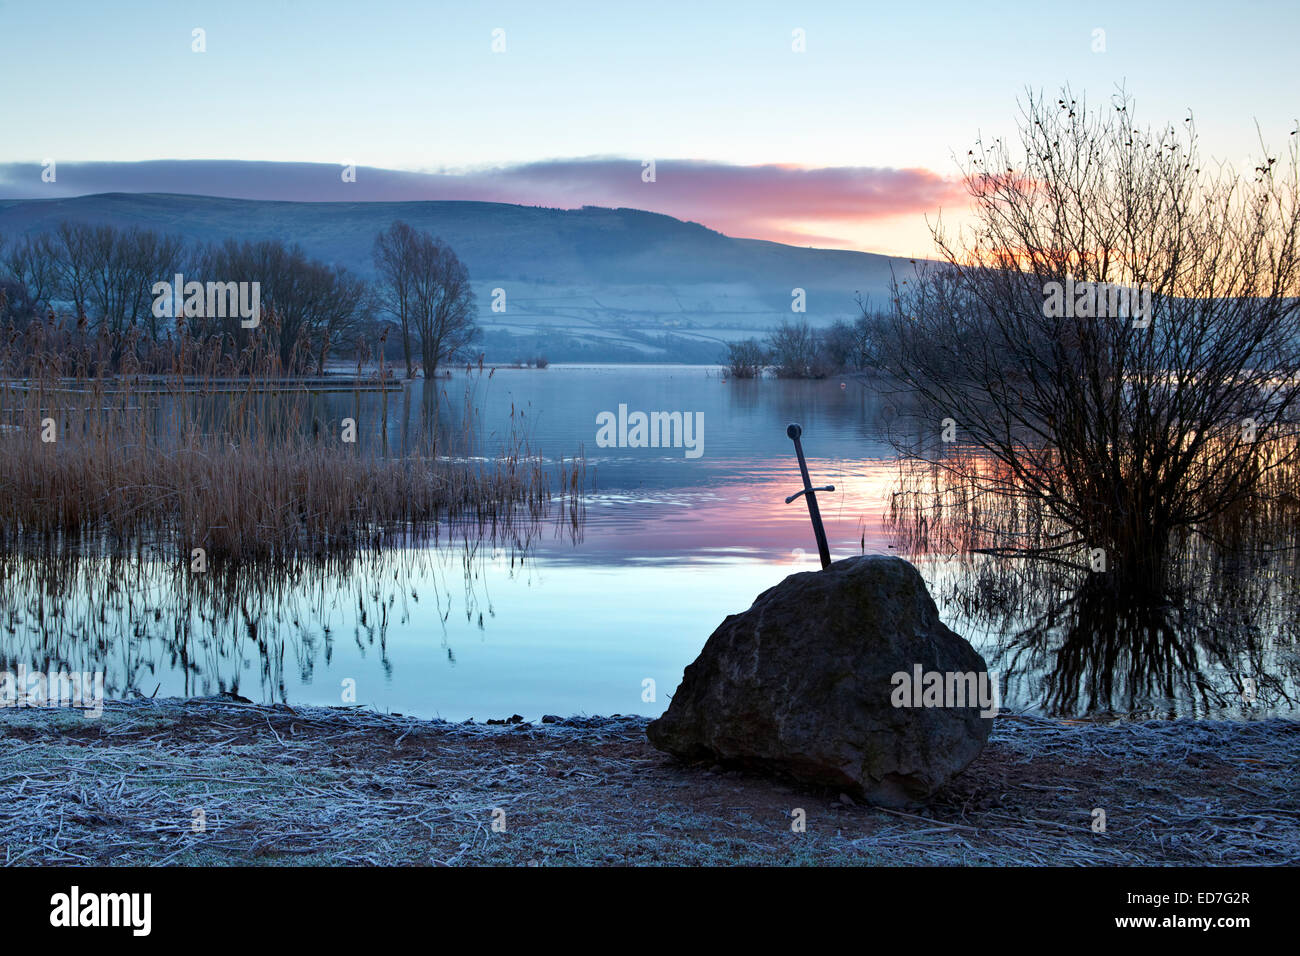 81b050e649822 Sword In The Stone Stock Photos   Sword In The Stone Stock Images ...